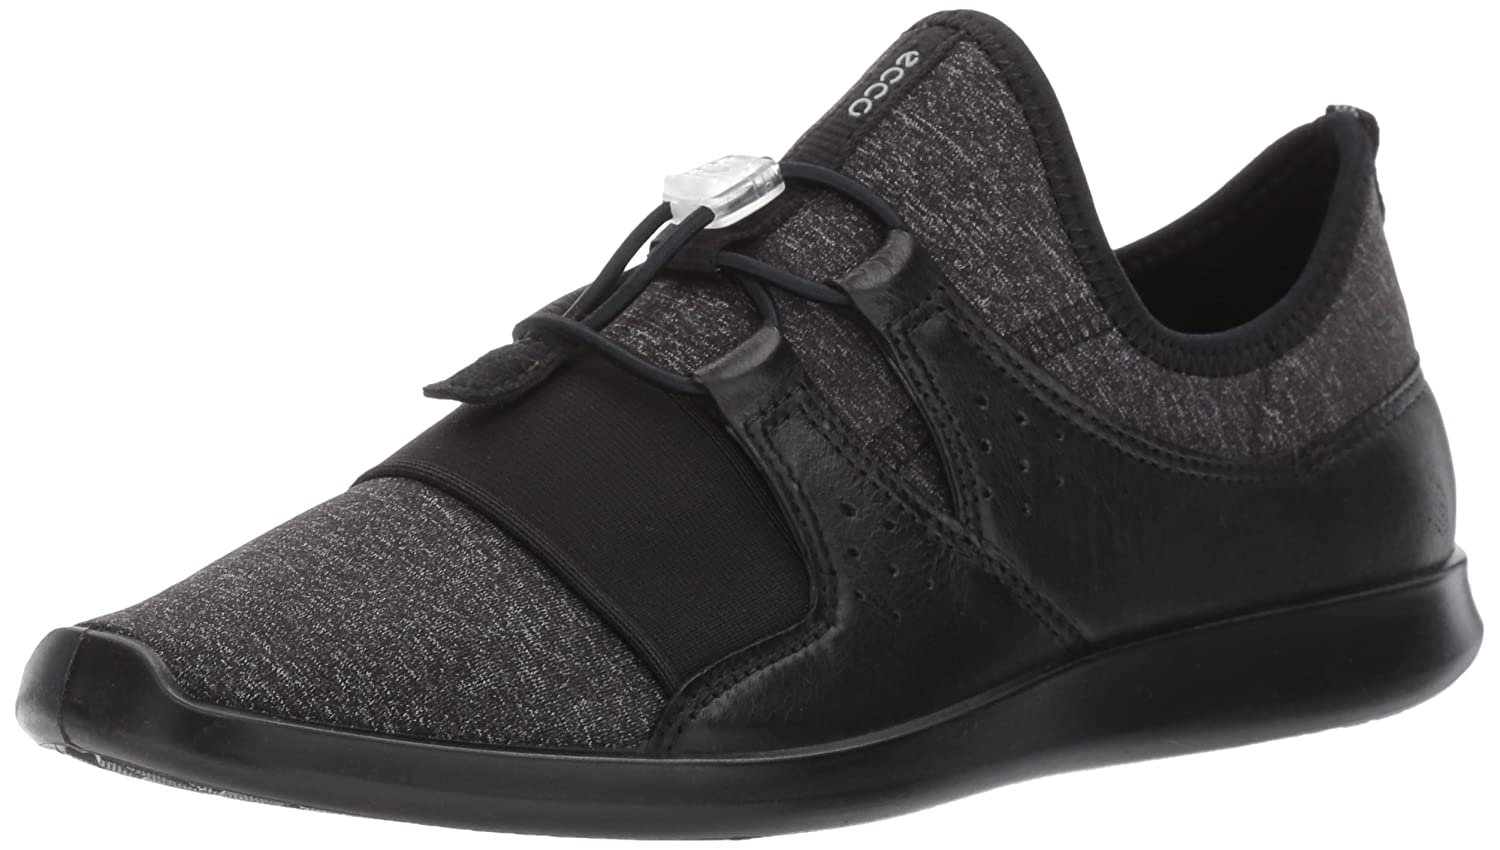 ECCO Women's Sense Elastic Toggle Fashion Sneaker B01MFBWGM0 42 EU / 11-11.5 US|Black/Black